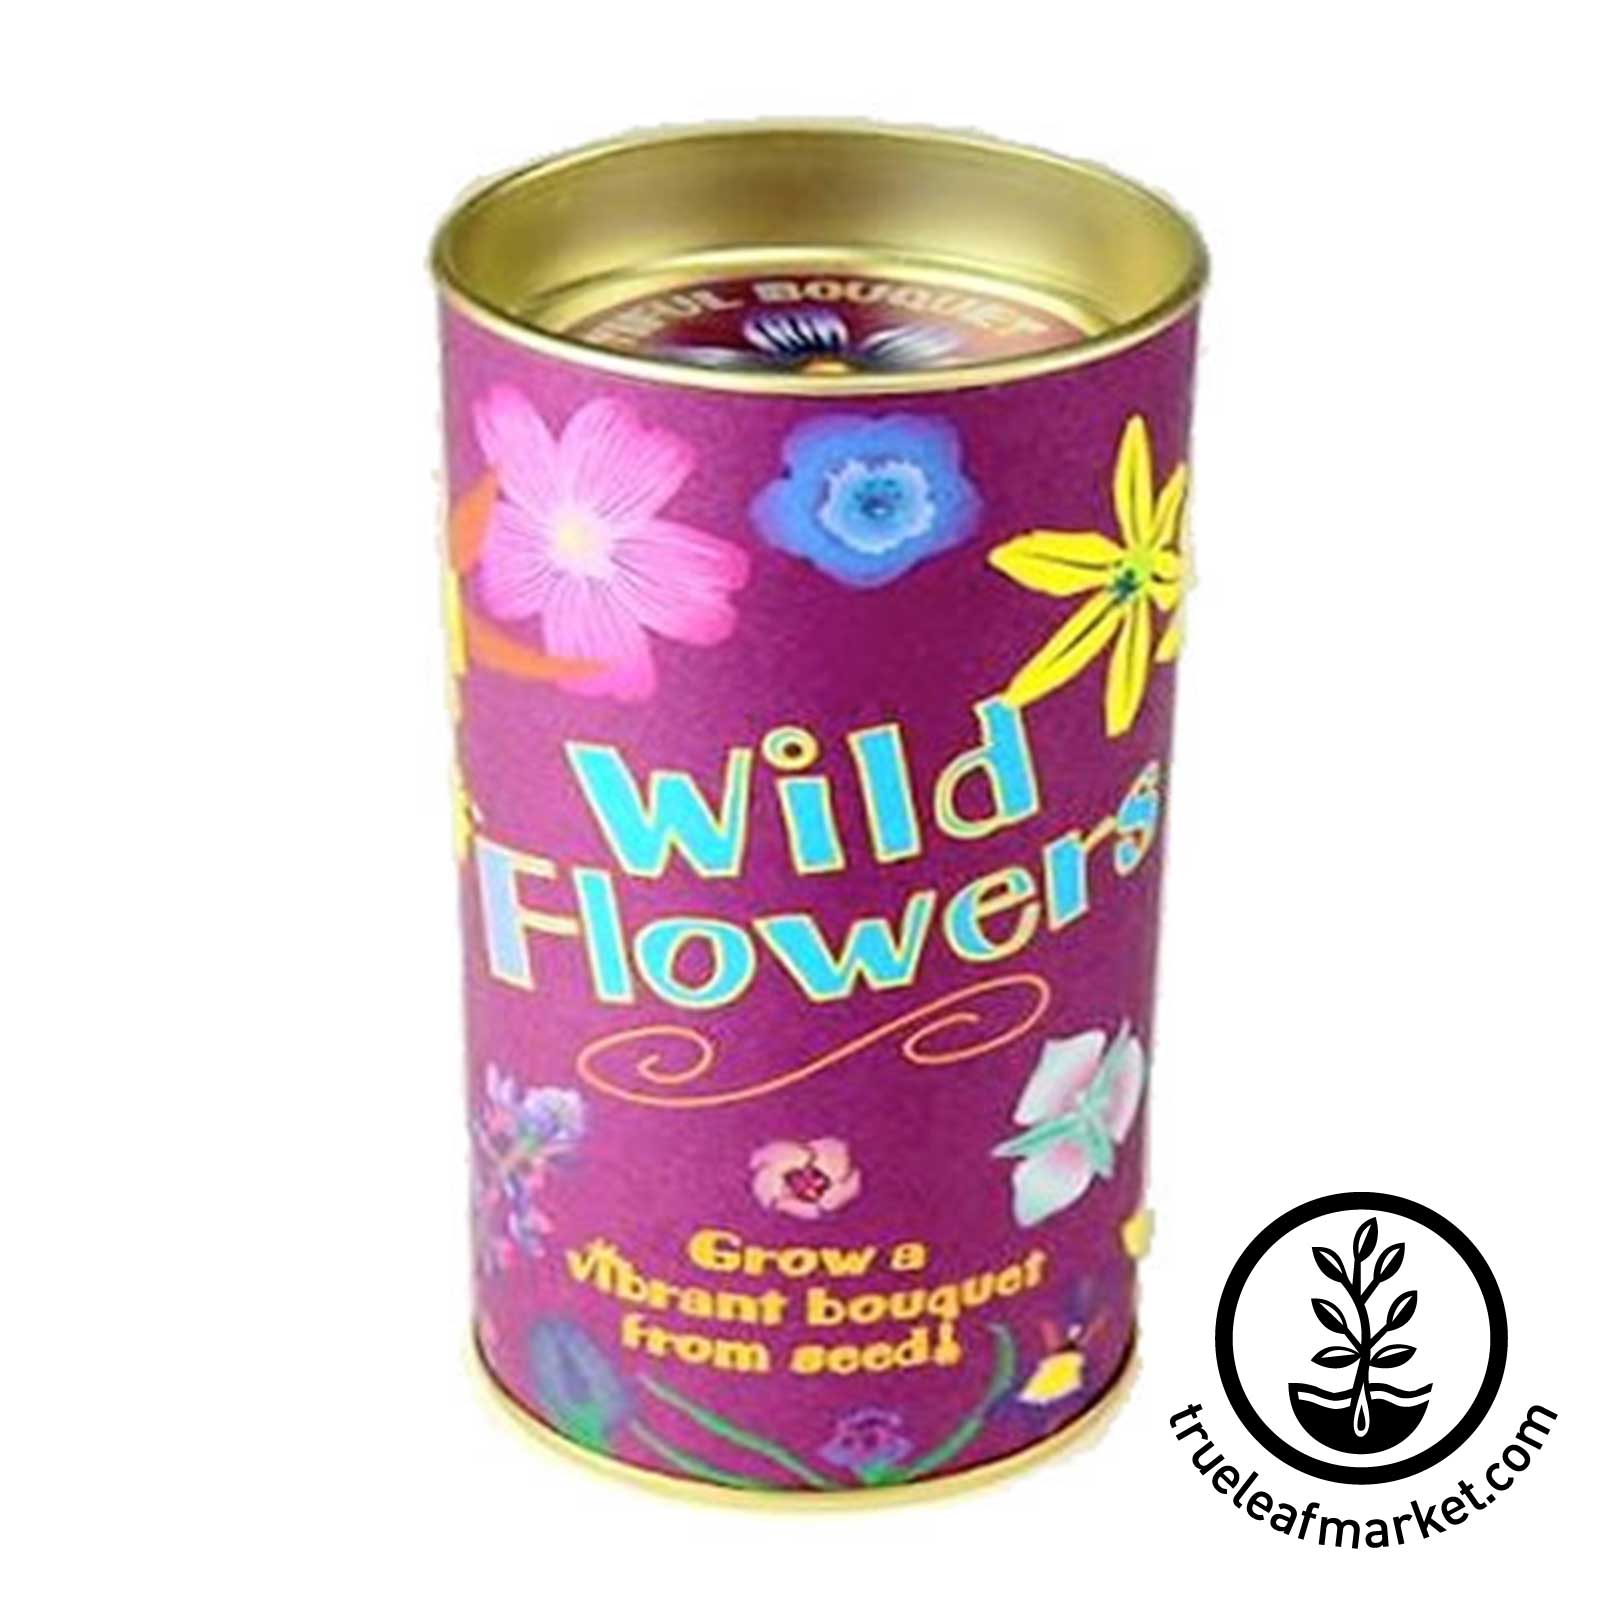 Wild Flowers Kit flower, kit, wild, flower, wildflower, seeds, seed